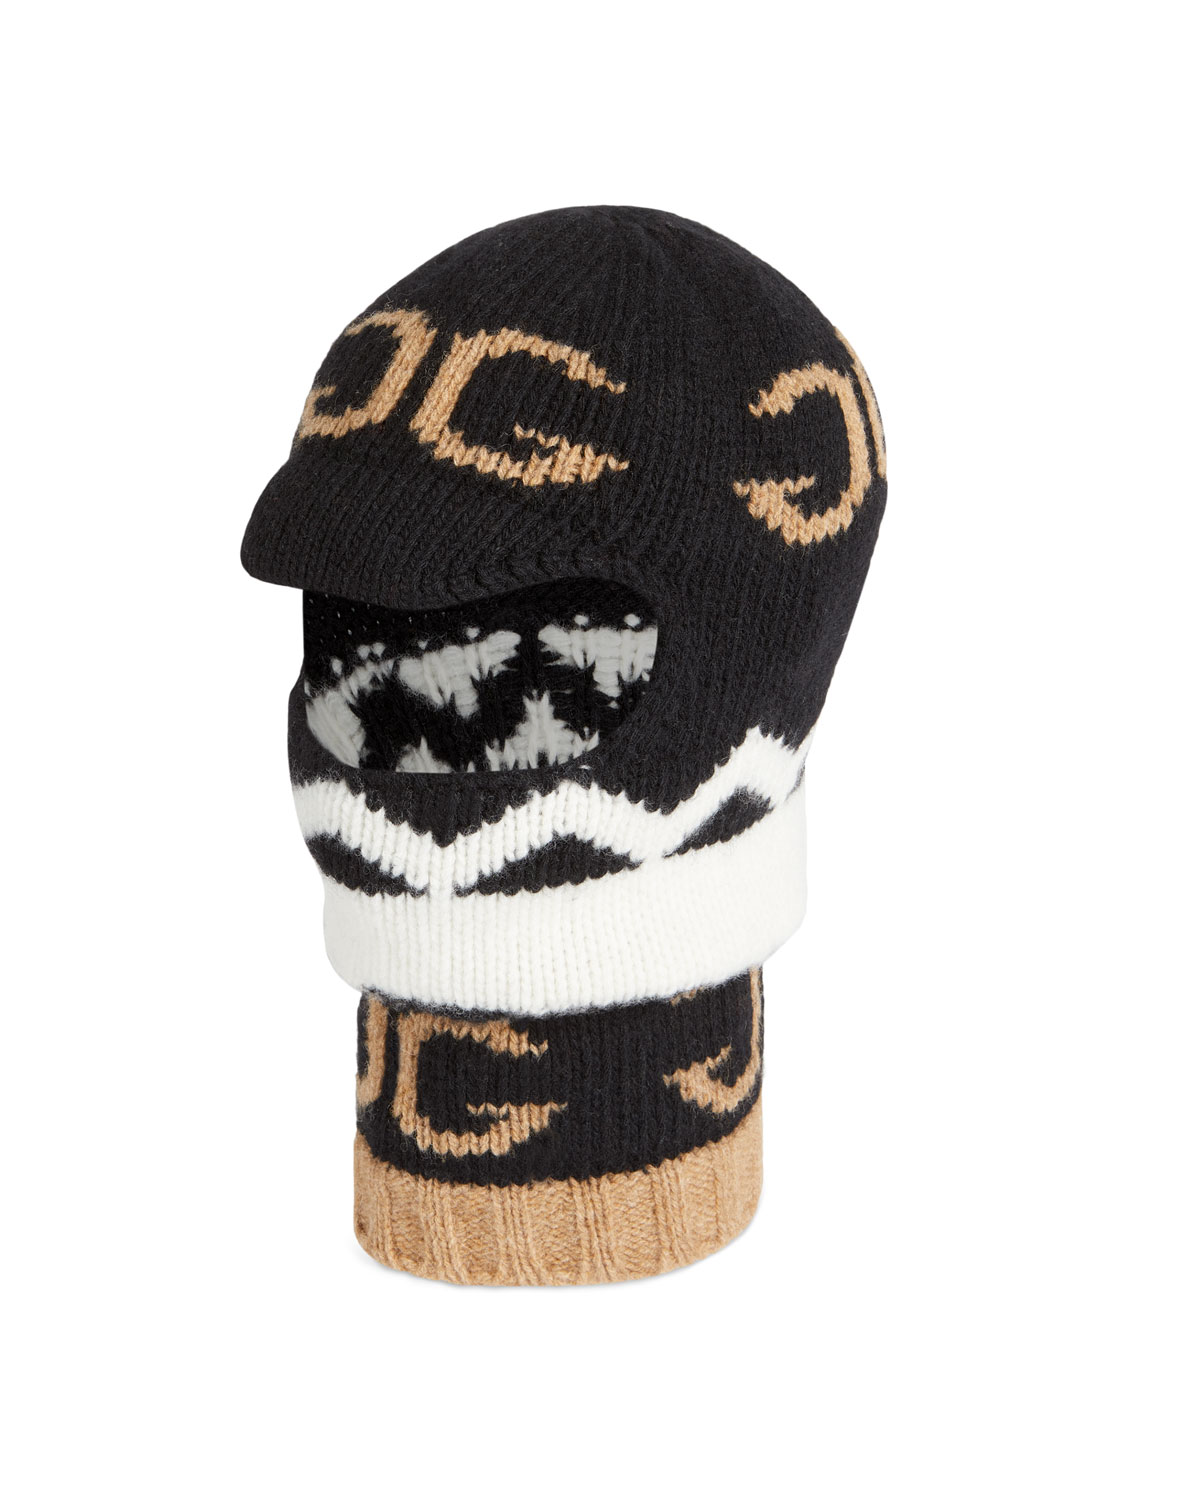 ae61eccf5b7 Gucci Men s Zigzag Mirrored-GG Balaclava Hood Hat